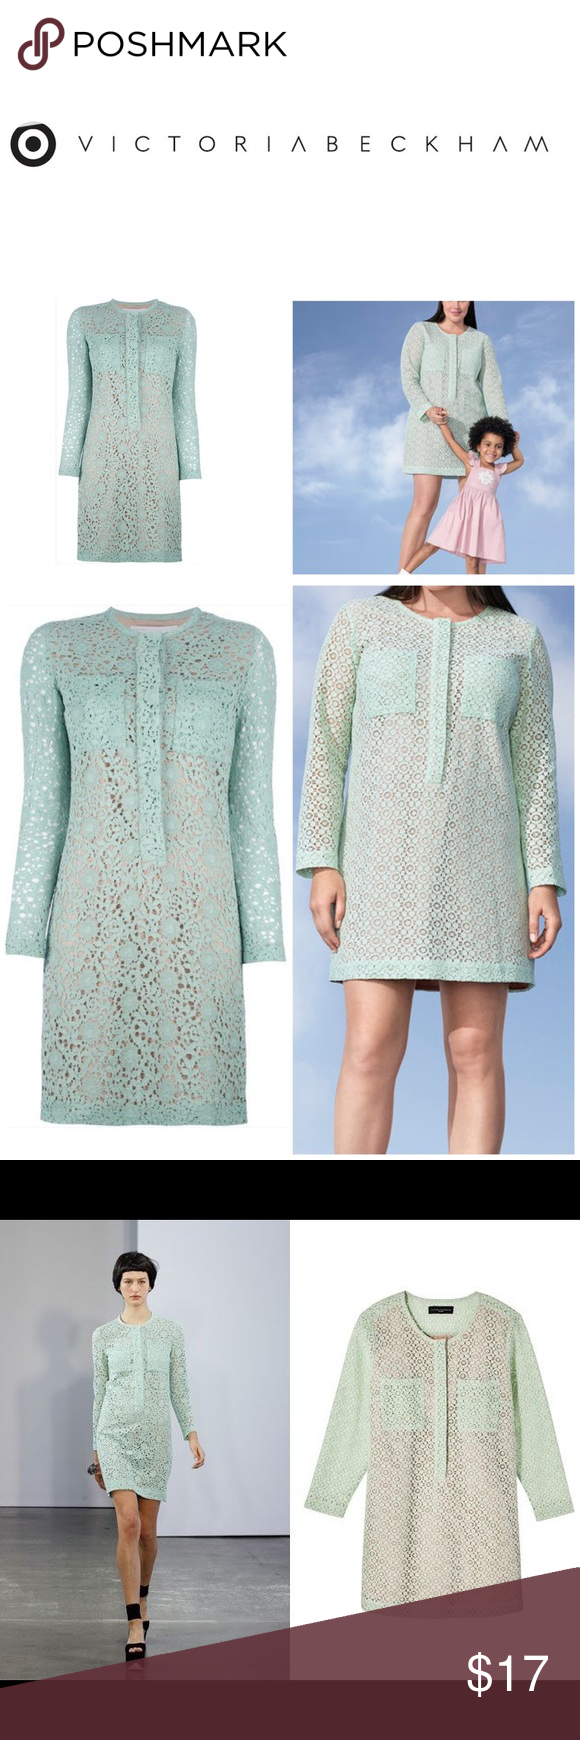 Victoria Beckham For Target Long Sleeve Lace Dress Long Sleeve Lace Dress Lace Dress Long Sleeve Lace [ 1740 x 580 Pixel ]